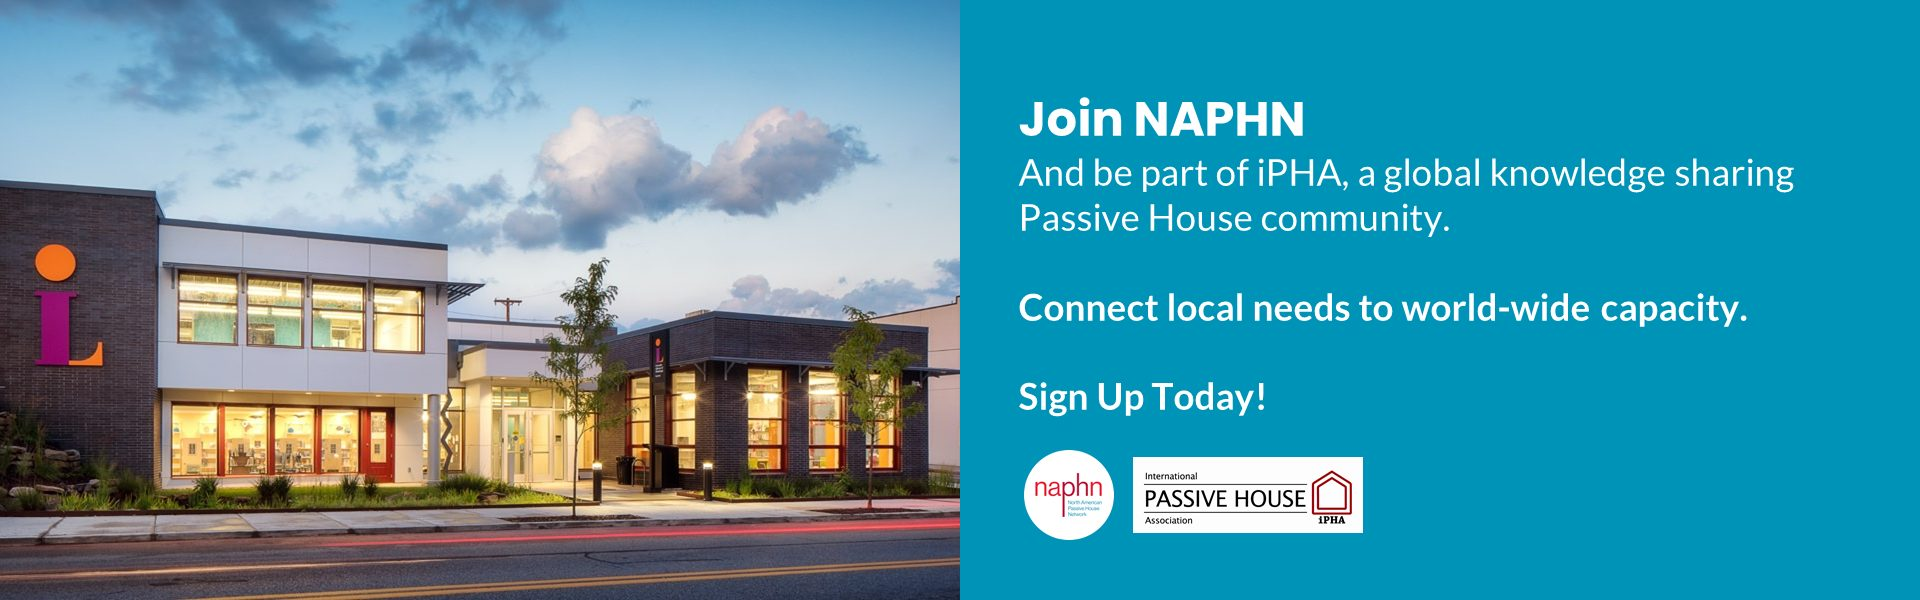 Join NAPHN and iPHA